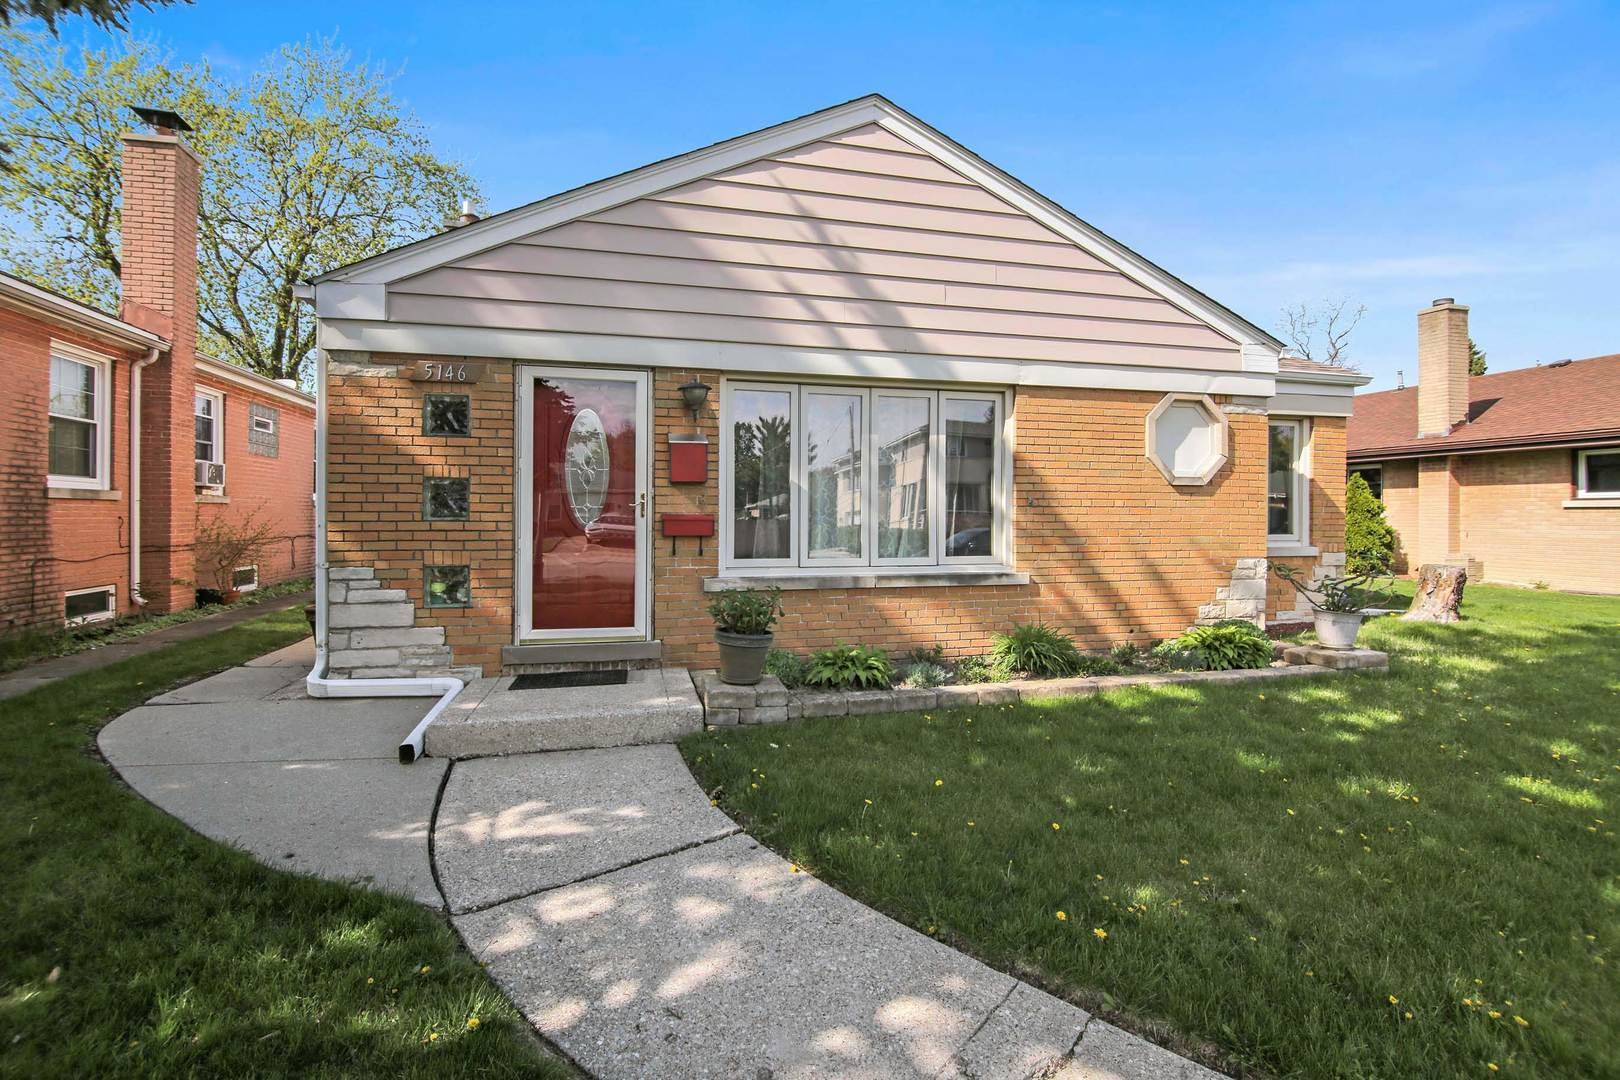 5146 Fitch Avenue, Skokie in Cook County, IL 60077 Home for Sale